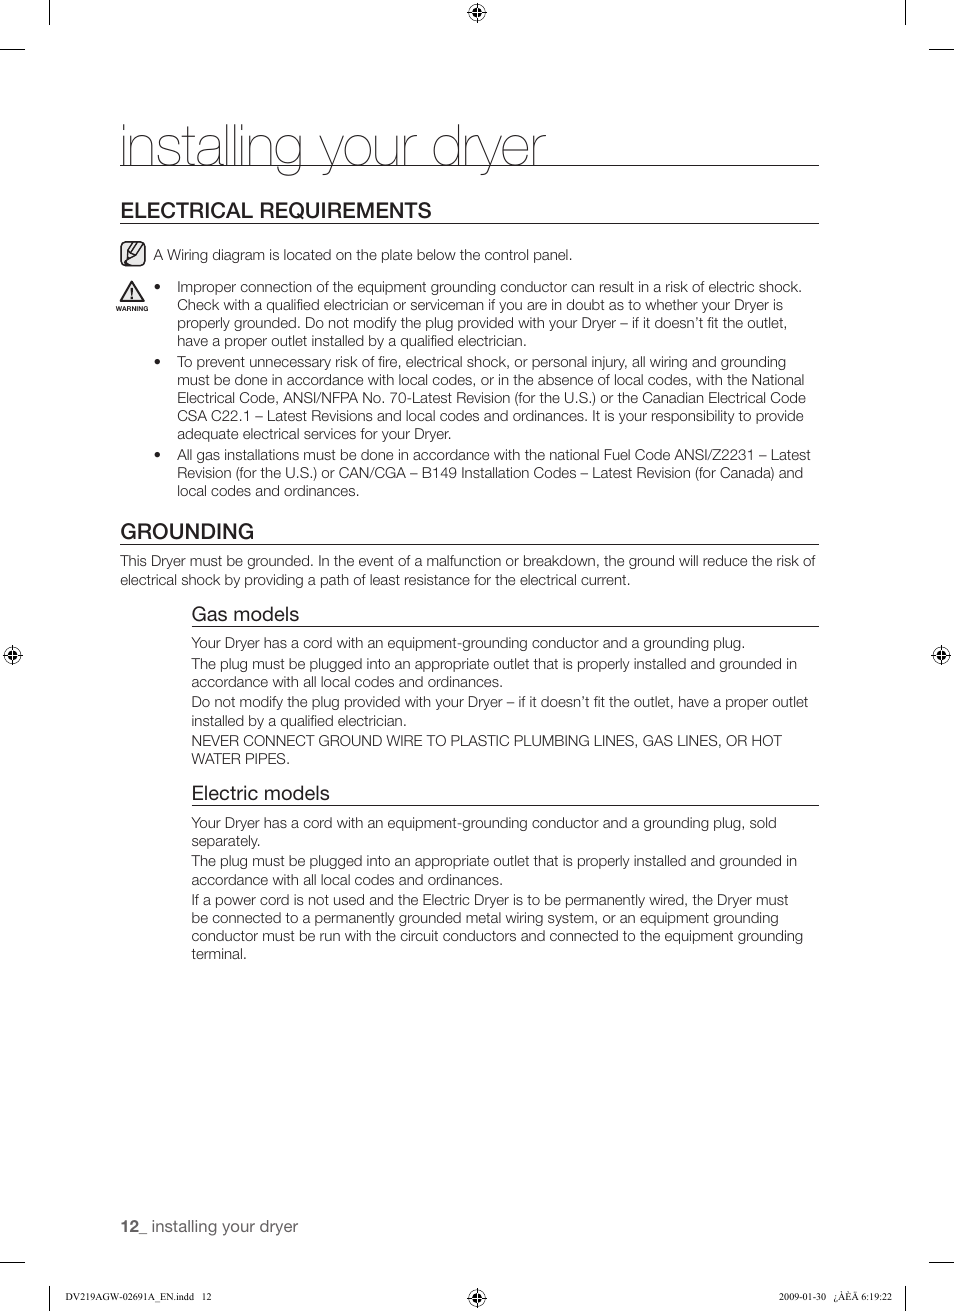 Installing your dryer, Electrical requirements, Grounding | Samsung  DV219AGW User Manual | Page 12 / 68